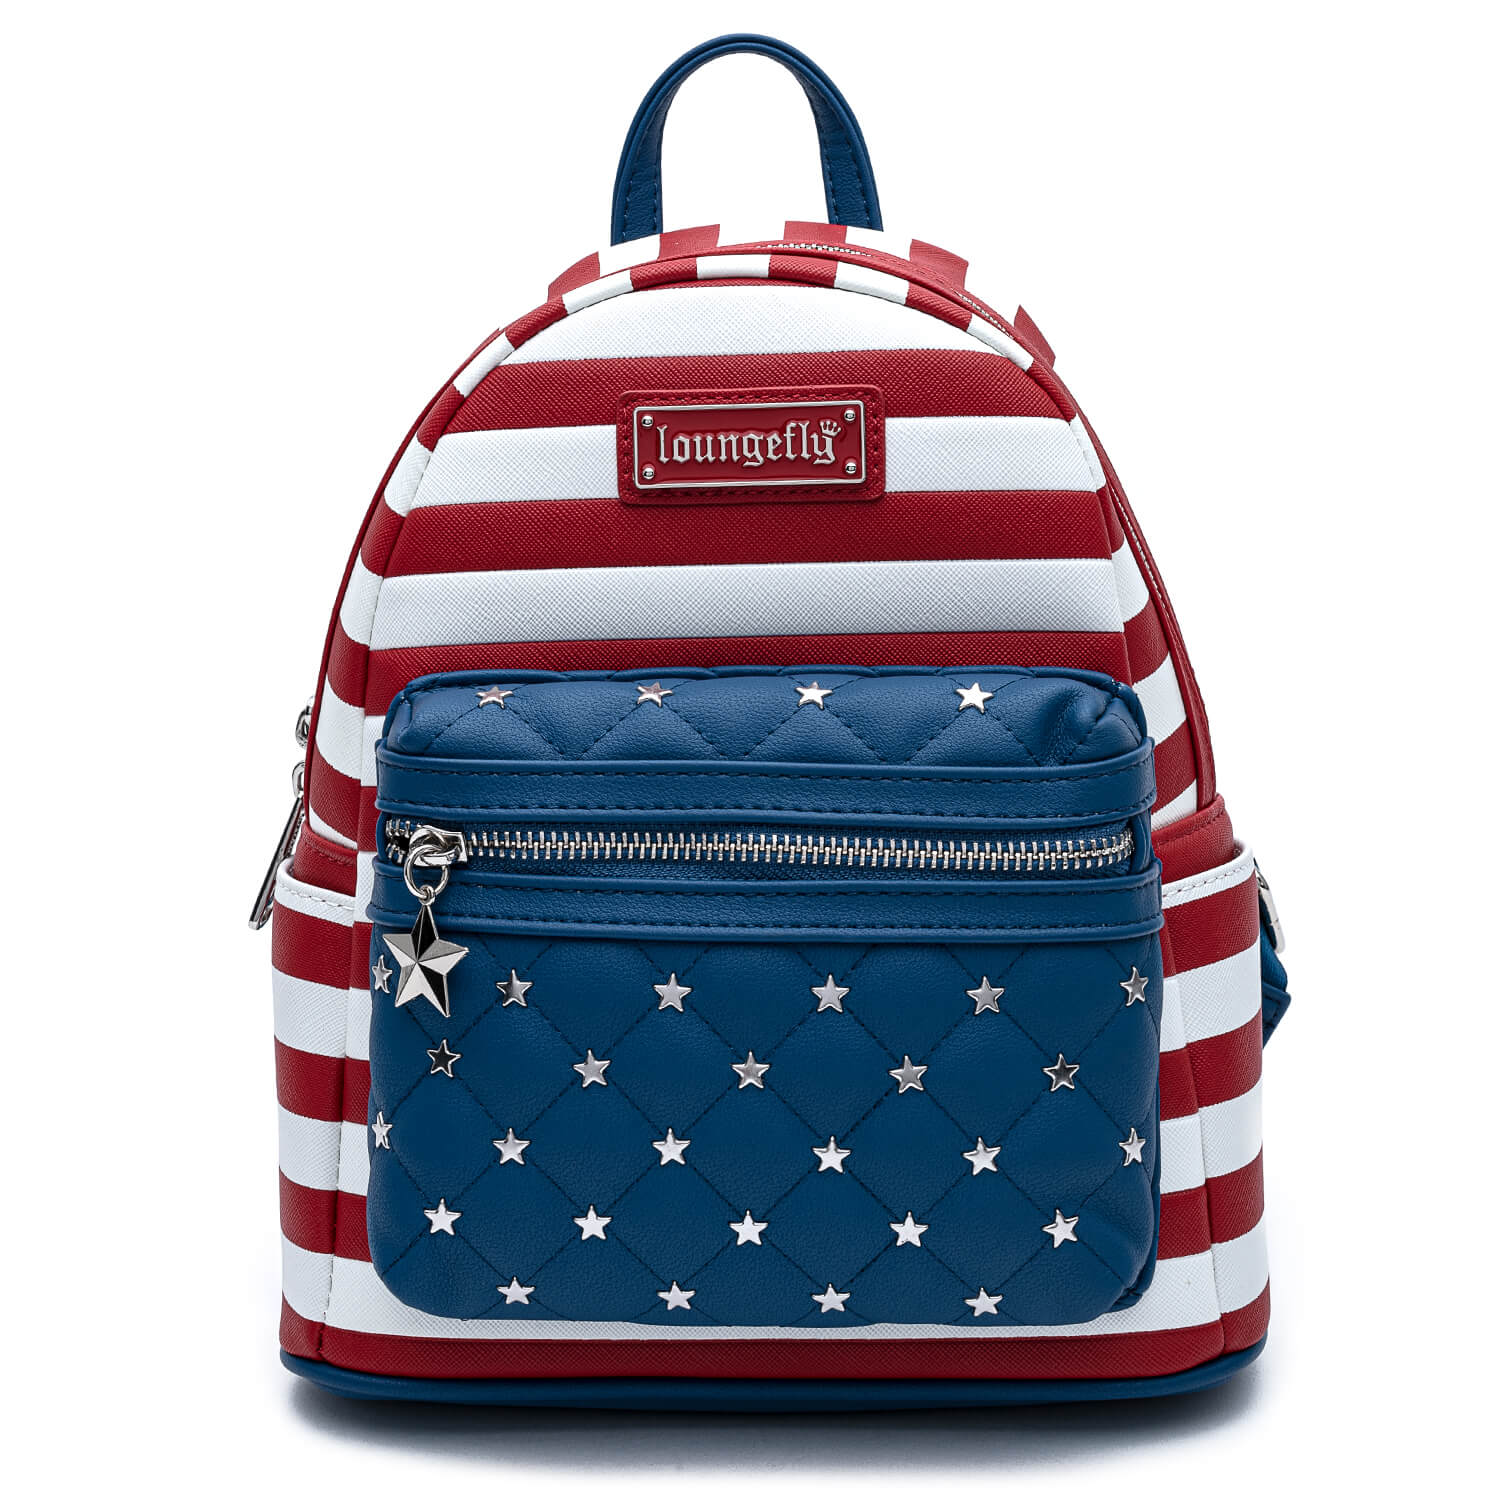 Image of Loungefly Americana Quilted Mini Backpack